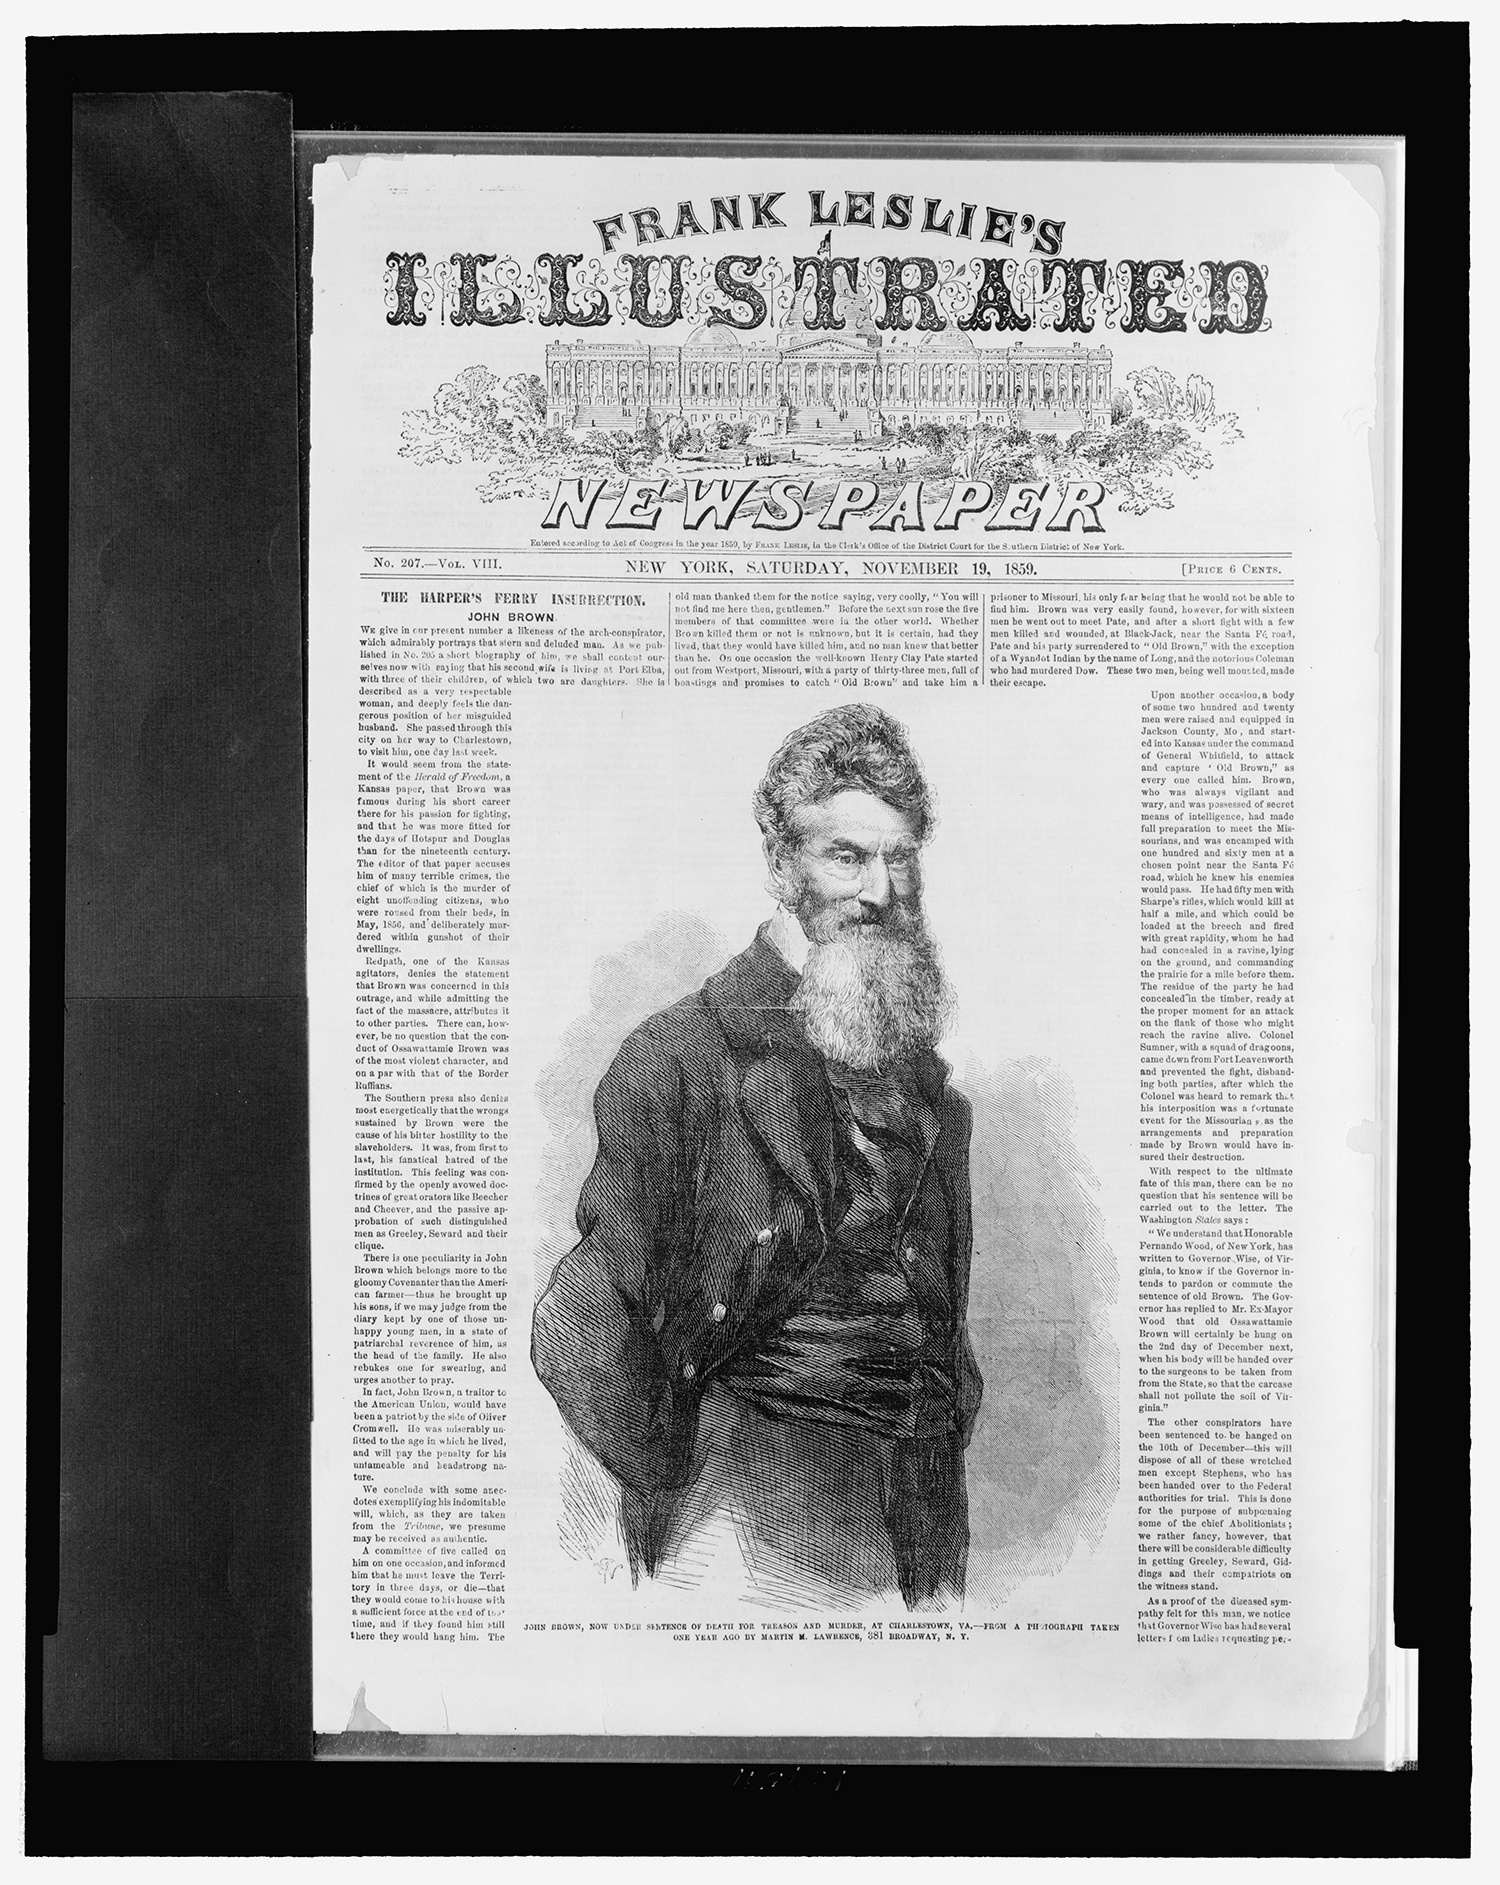 Engraving of John Brown as he appeared on Frank Leslie's Illustrated Newspaper, November 19, 1859. Courtesy of the Library of Congress, Prints and Photographs Division.